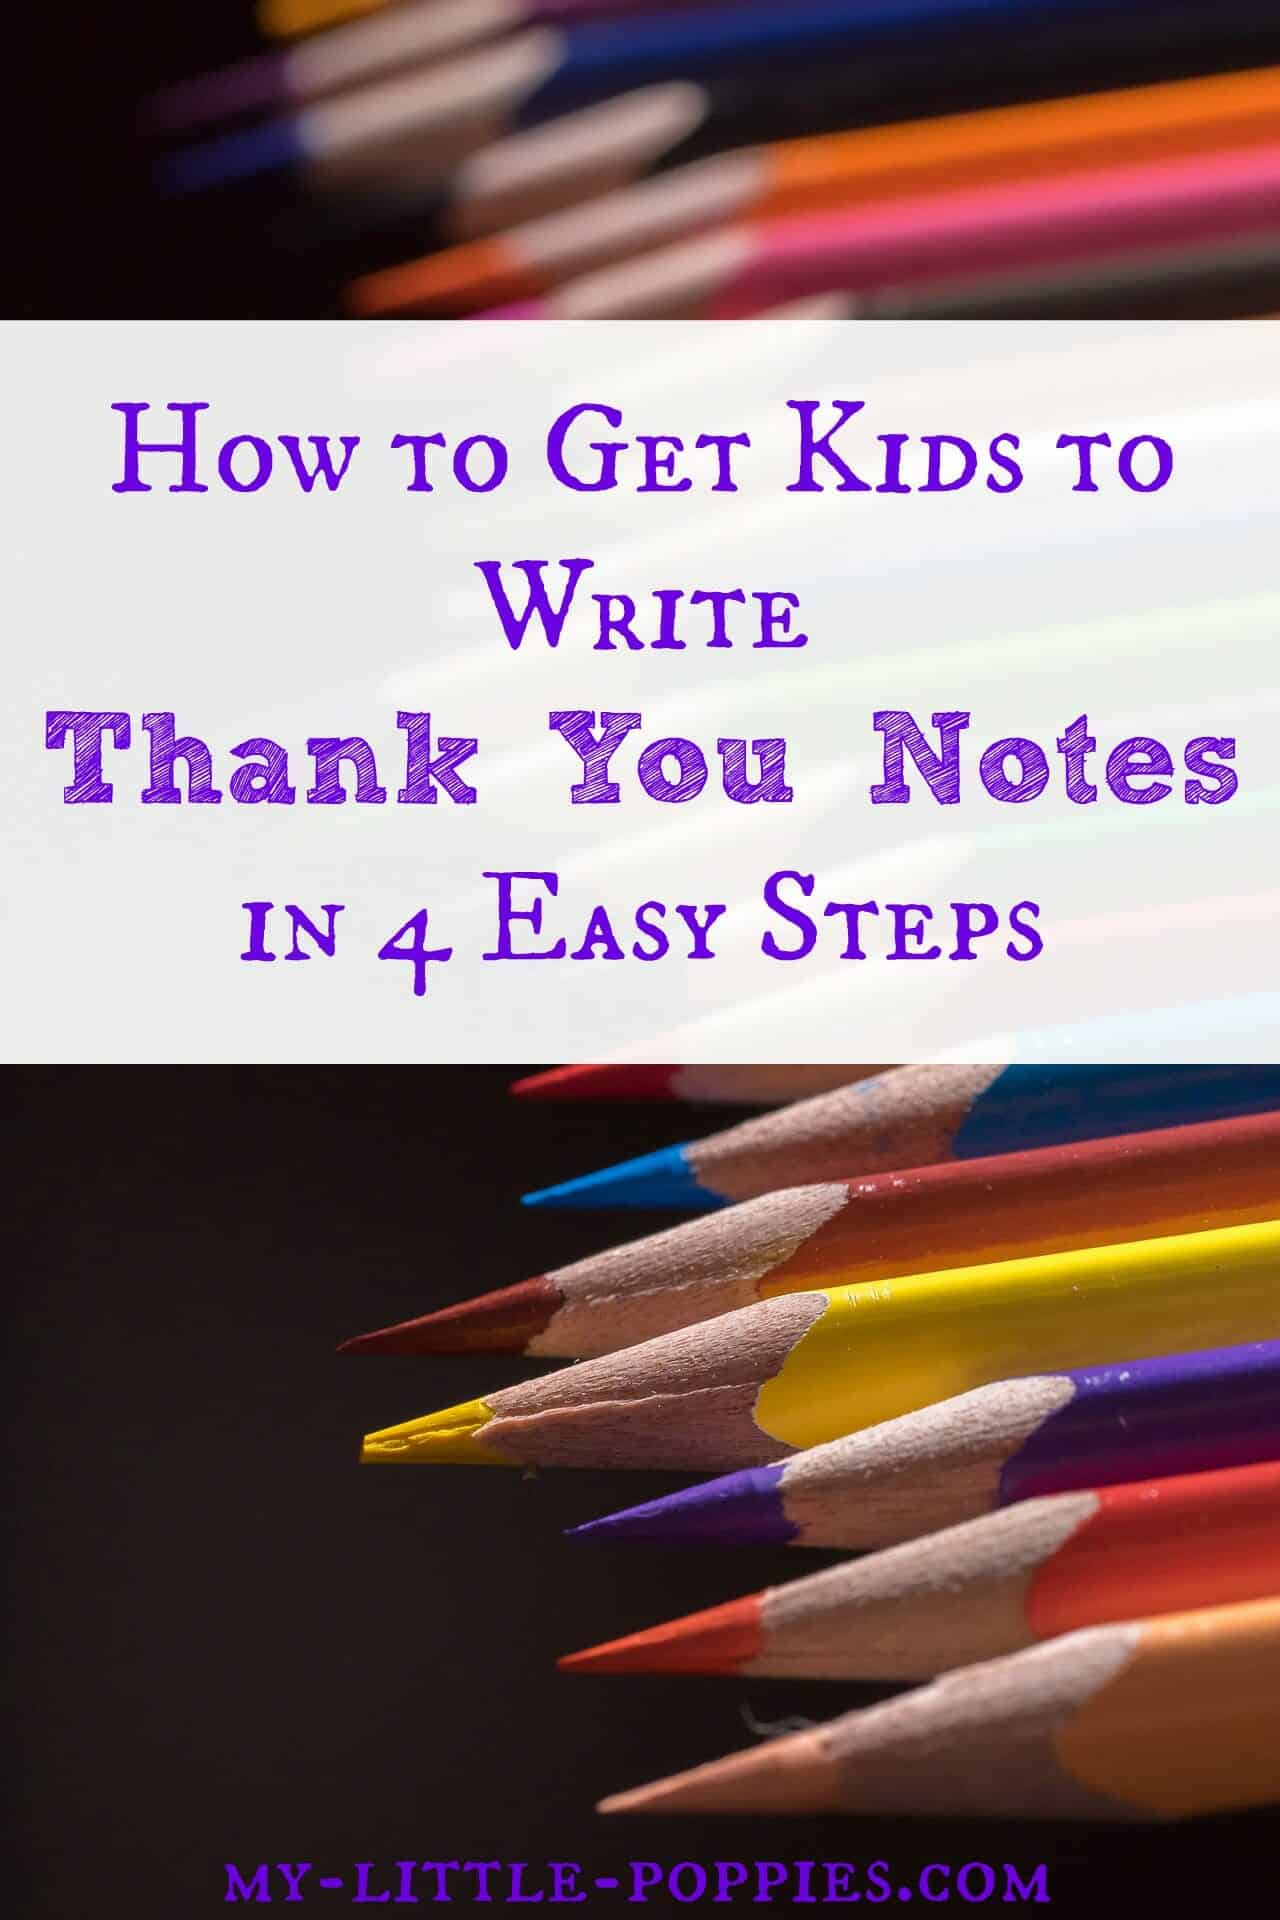 how to get kids to write thank you notes in 4 easy steps my little